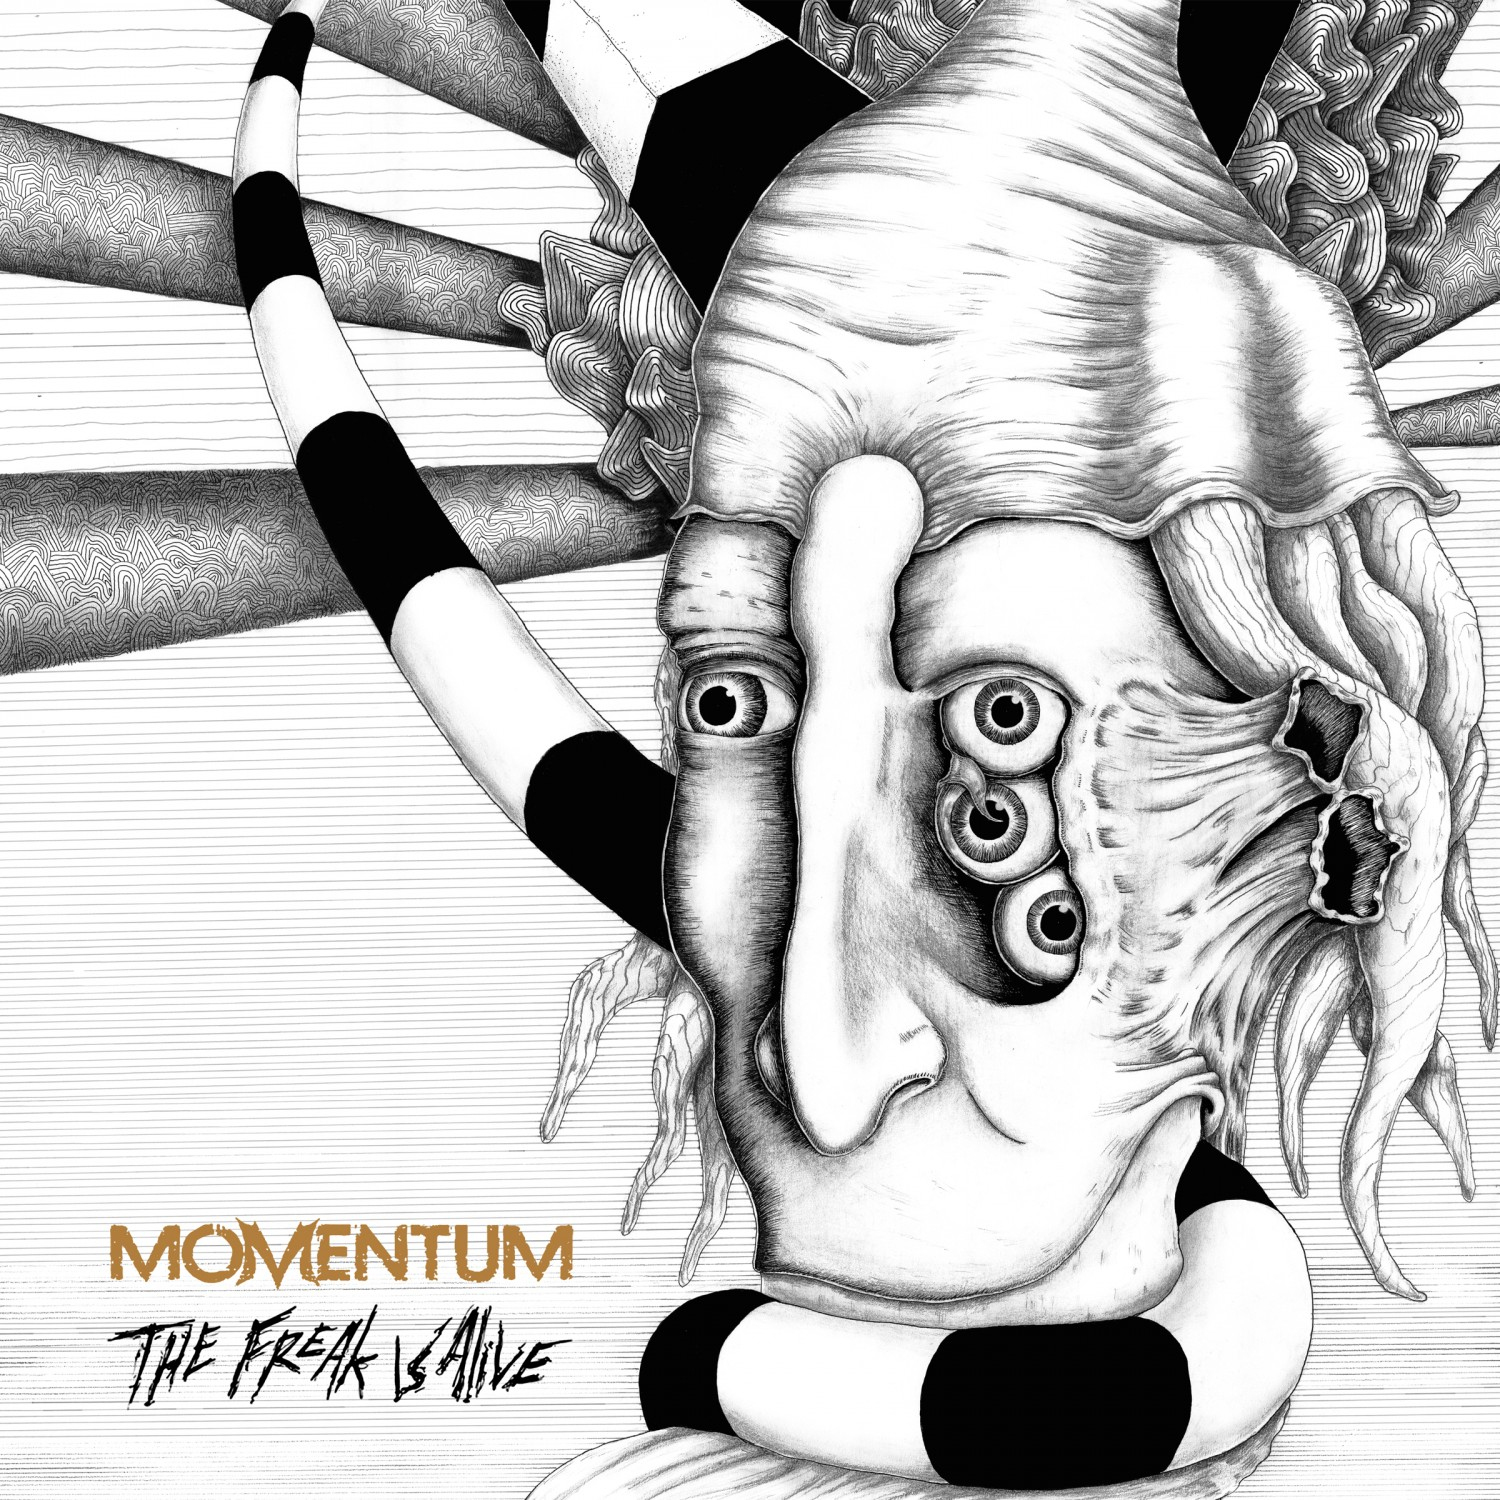 Momentum – The Freak Is Alive Review